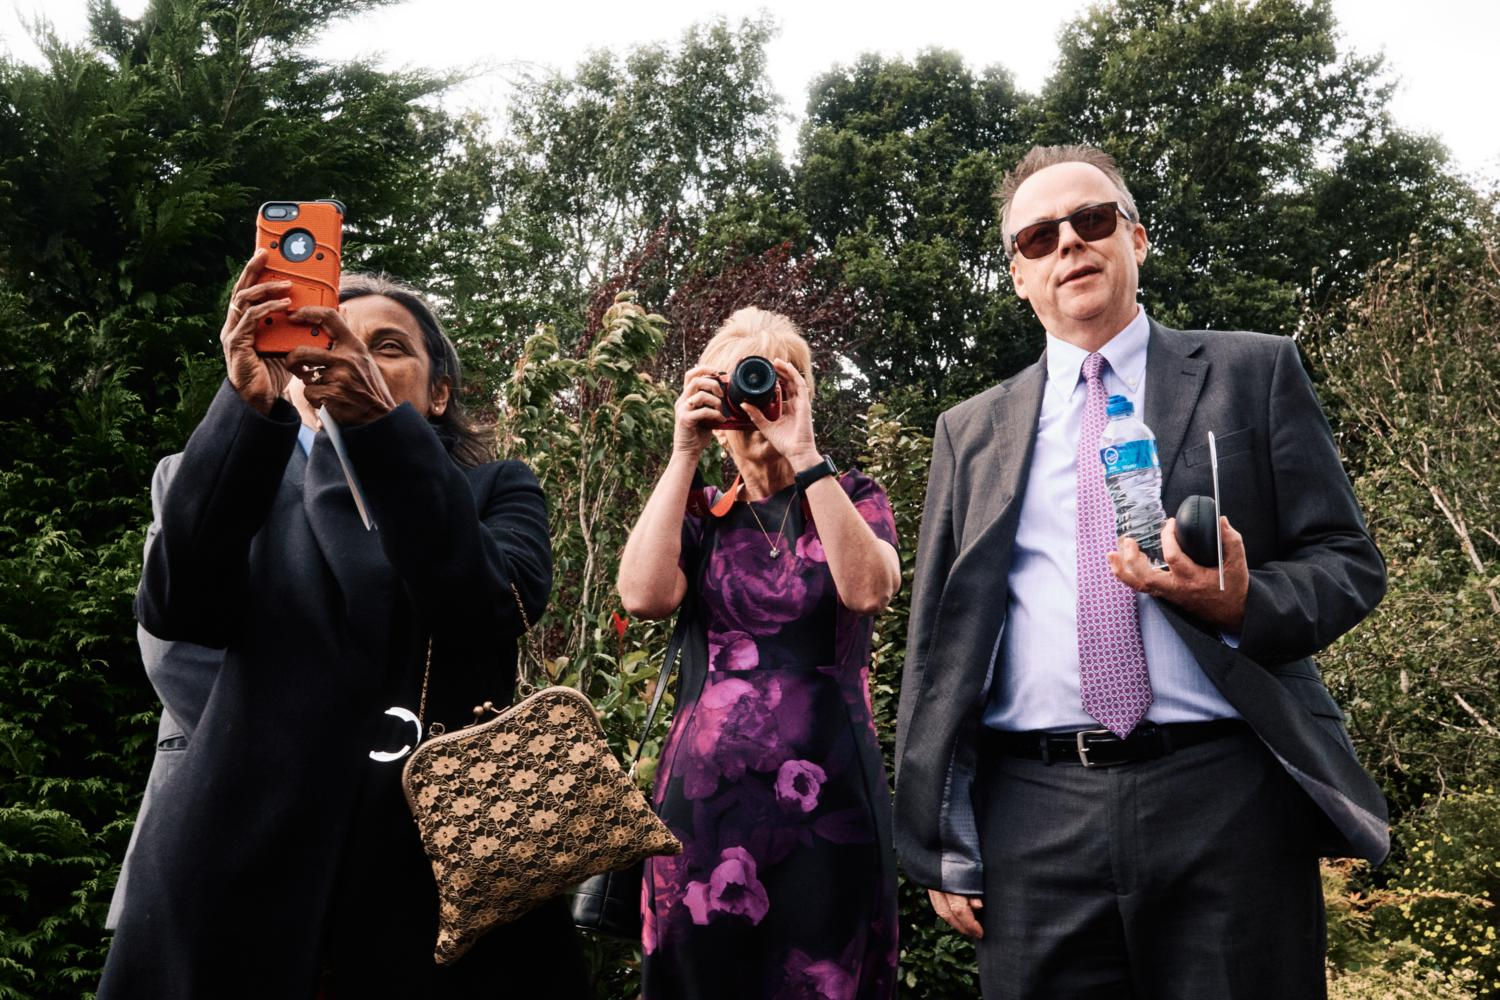 Three photographers at a wedding